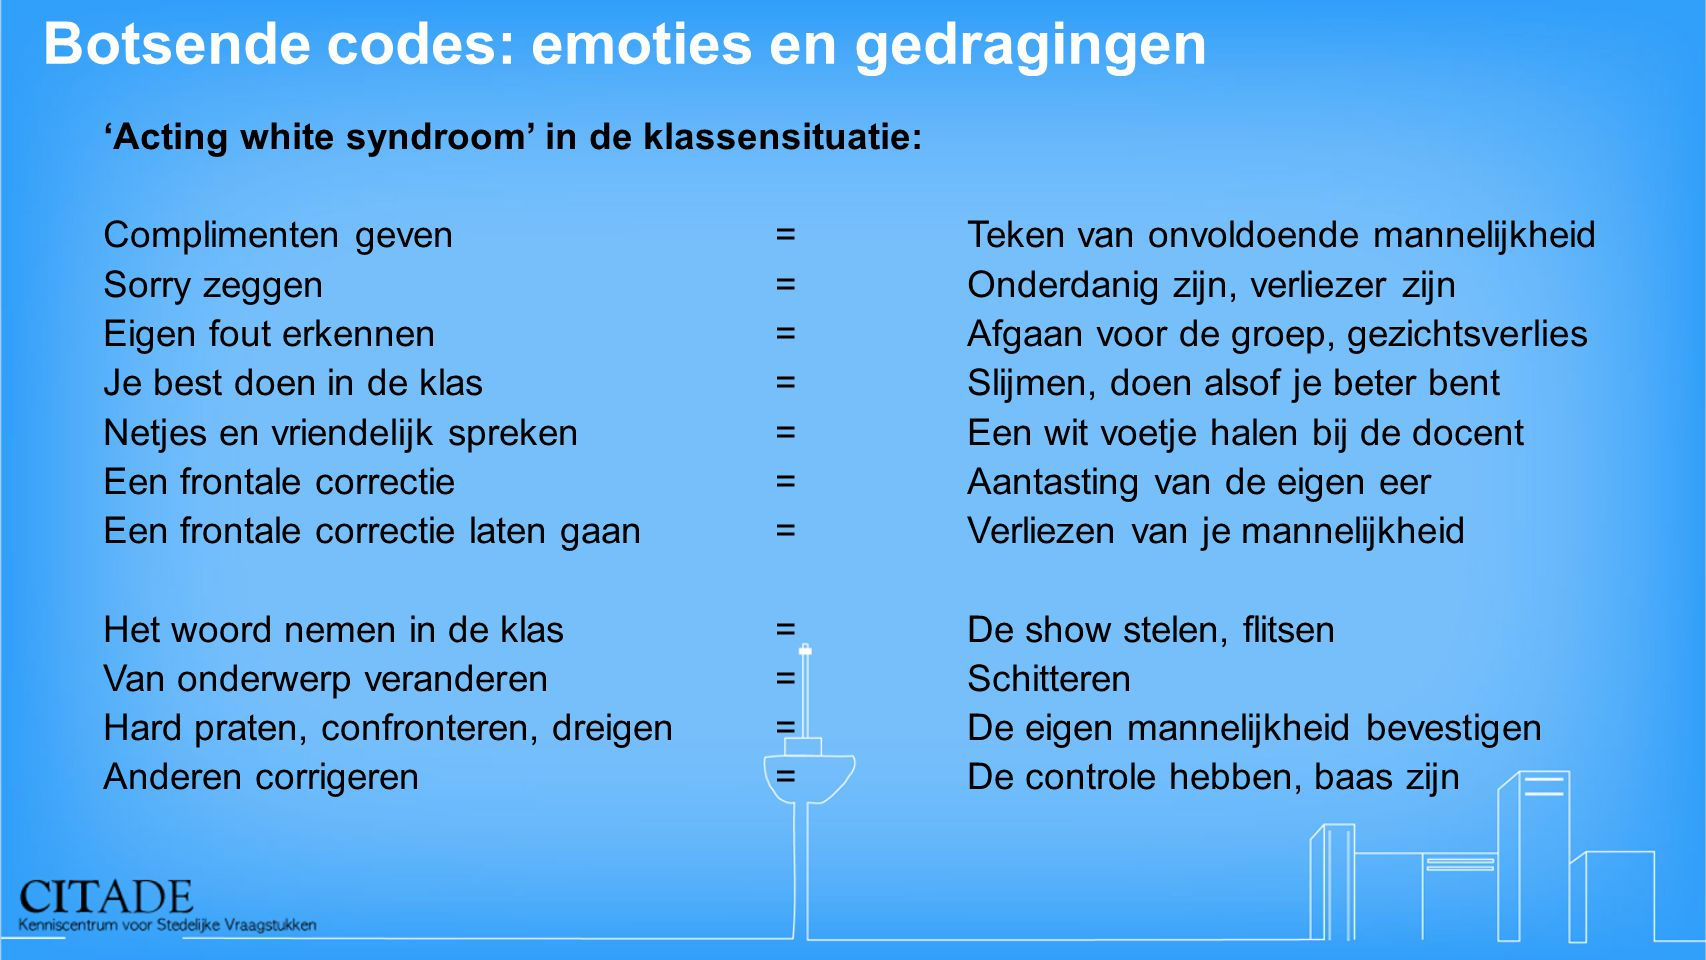 Botsende codes: emoties en gedragingen